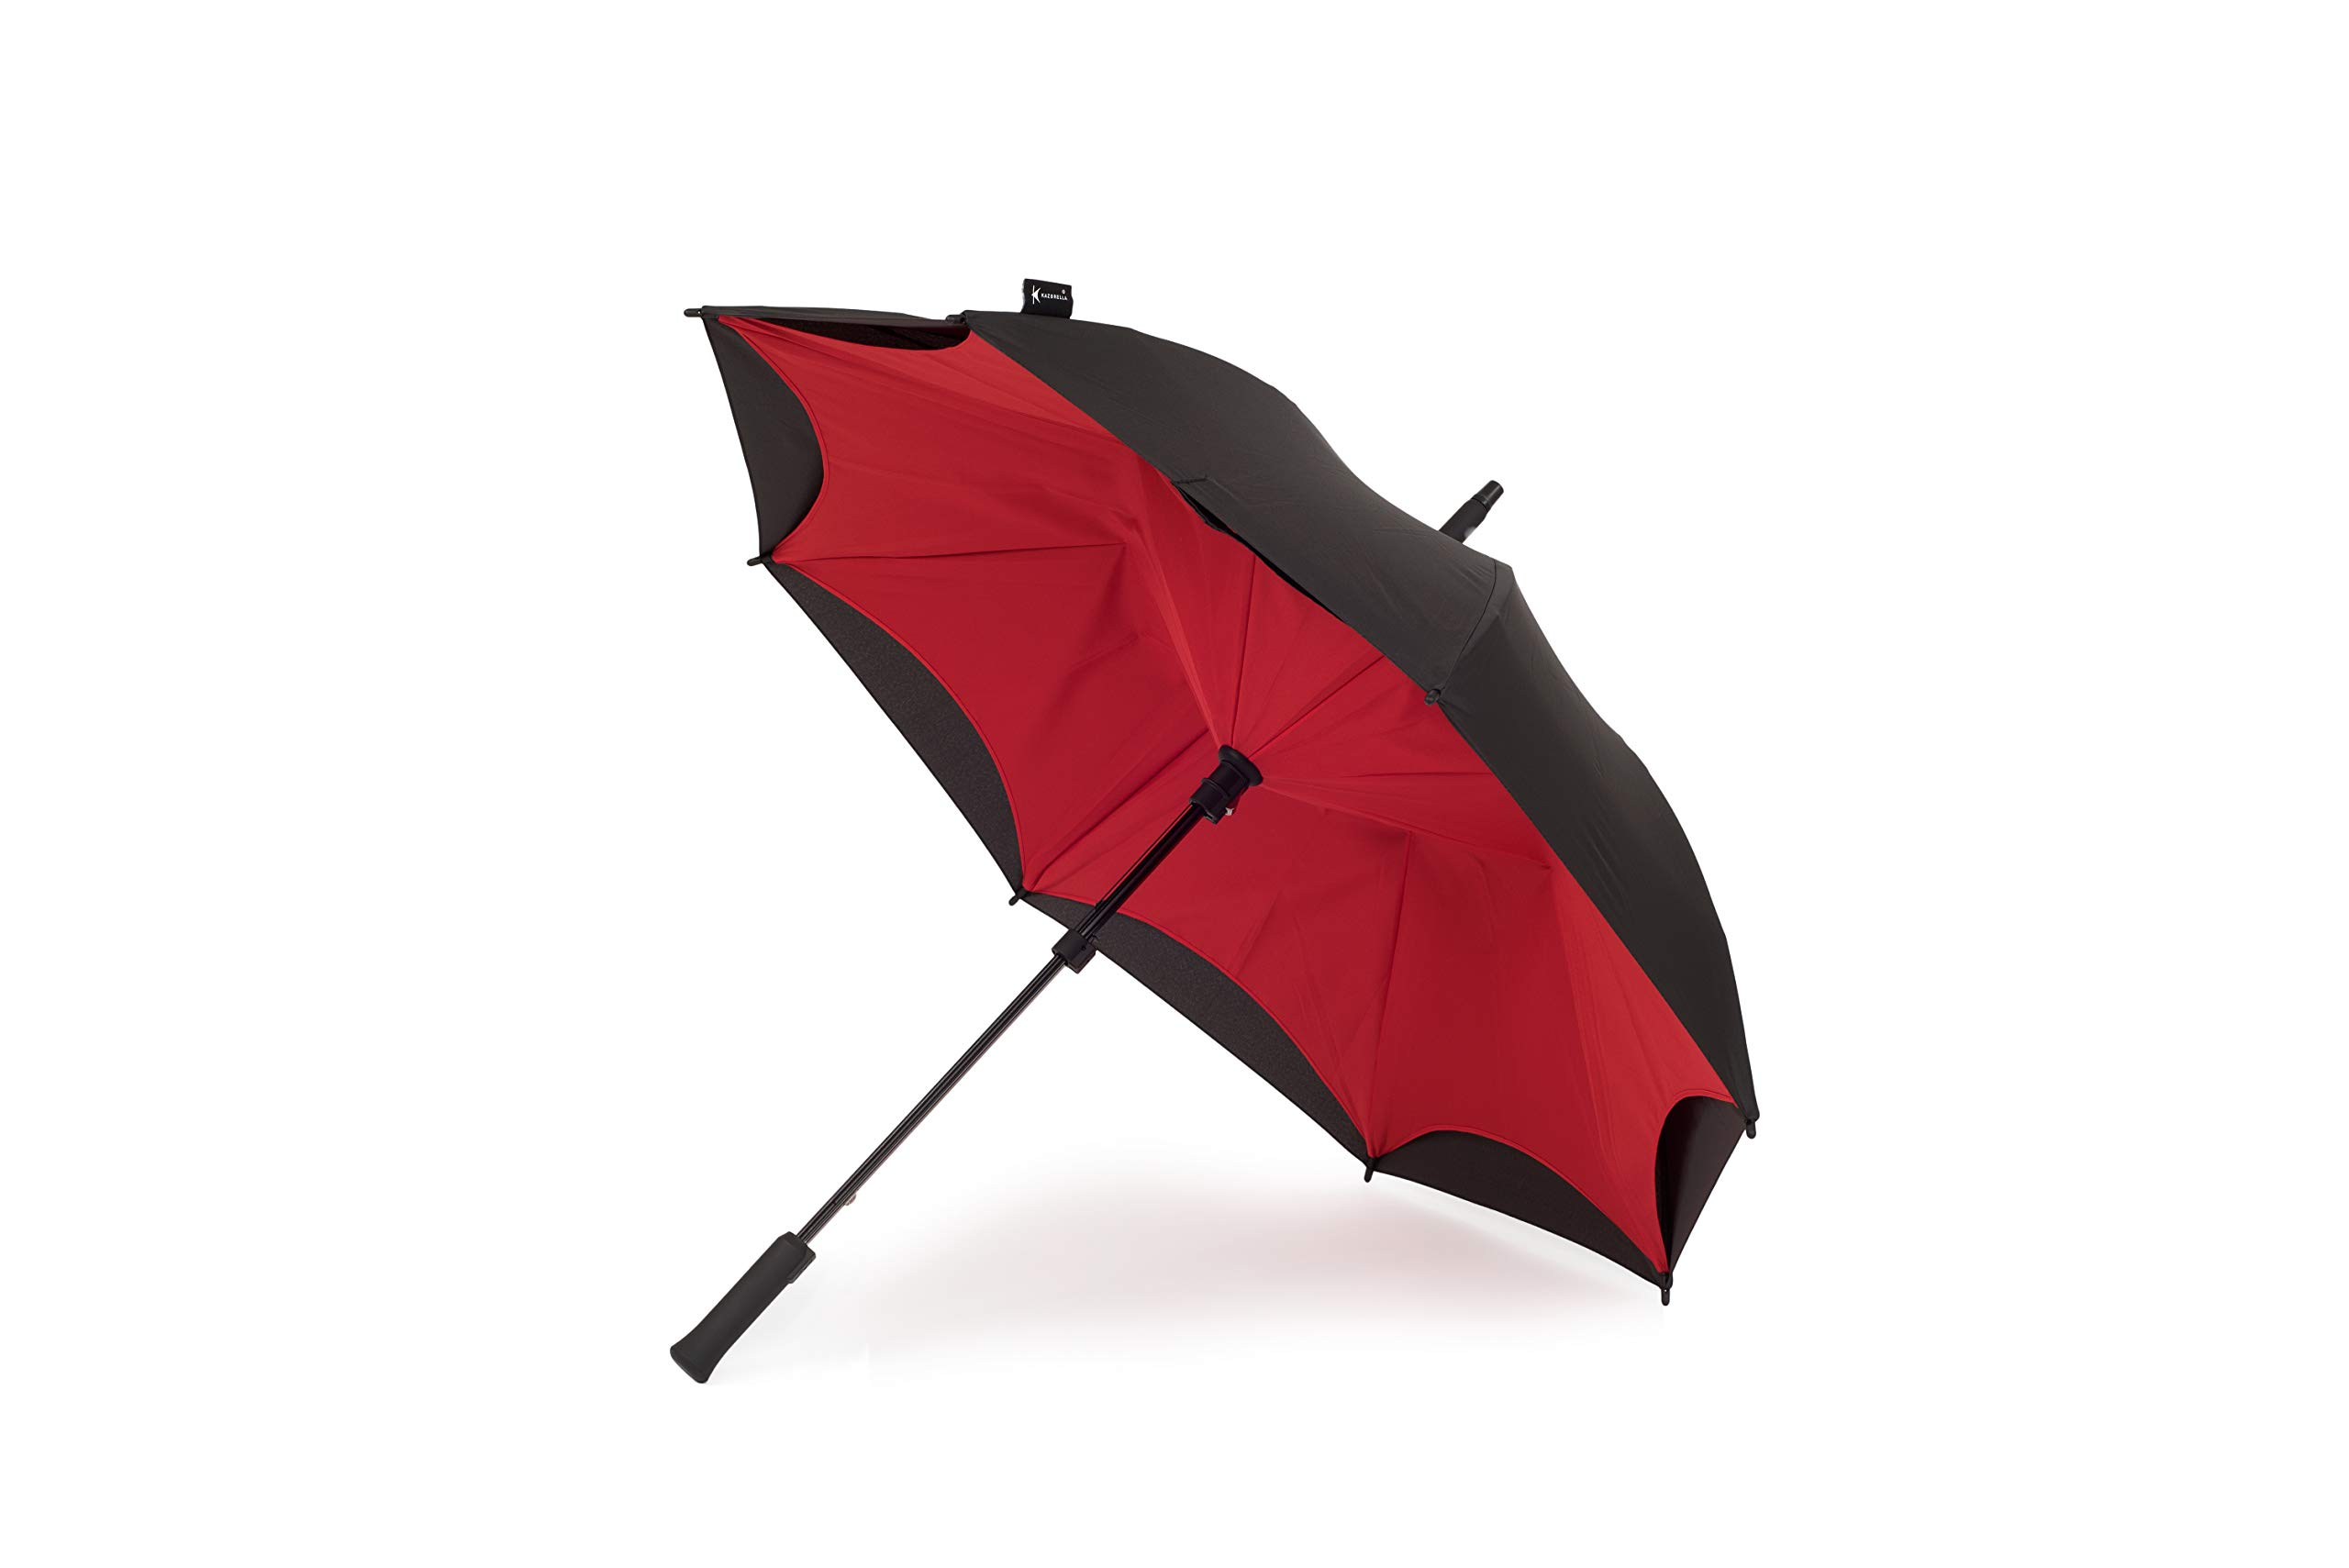 Orginal Kazbrella Reverse Folding Inverted Umbrella Double Layer Wind Proof UV Proof (Red + Black (straight handle))